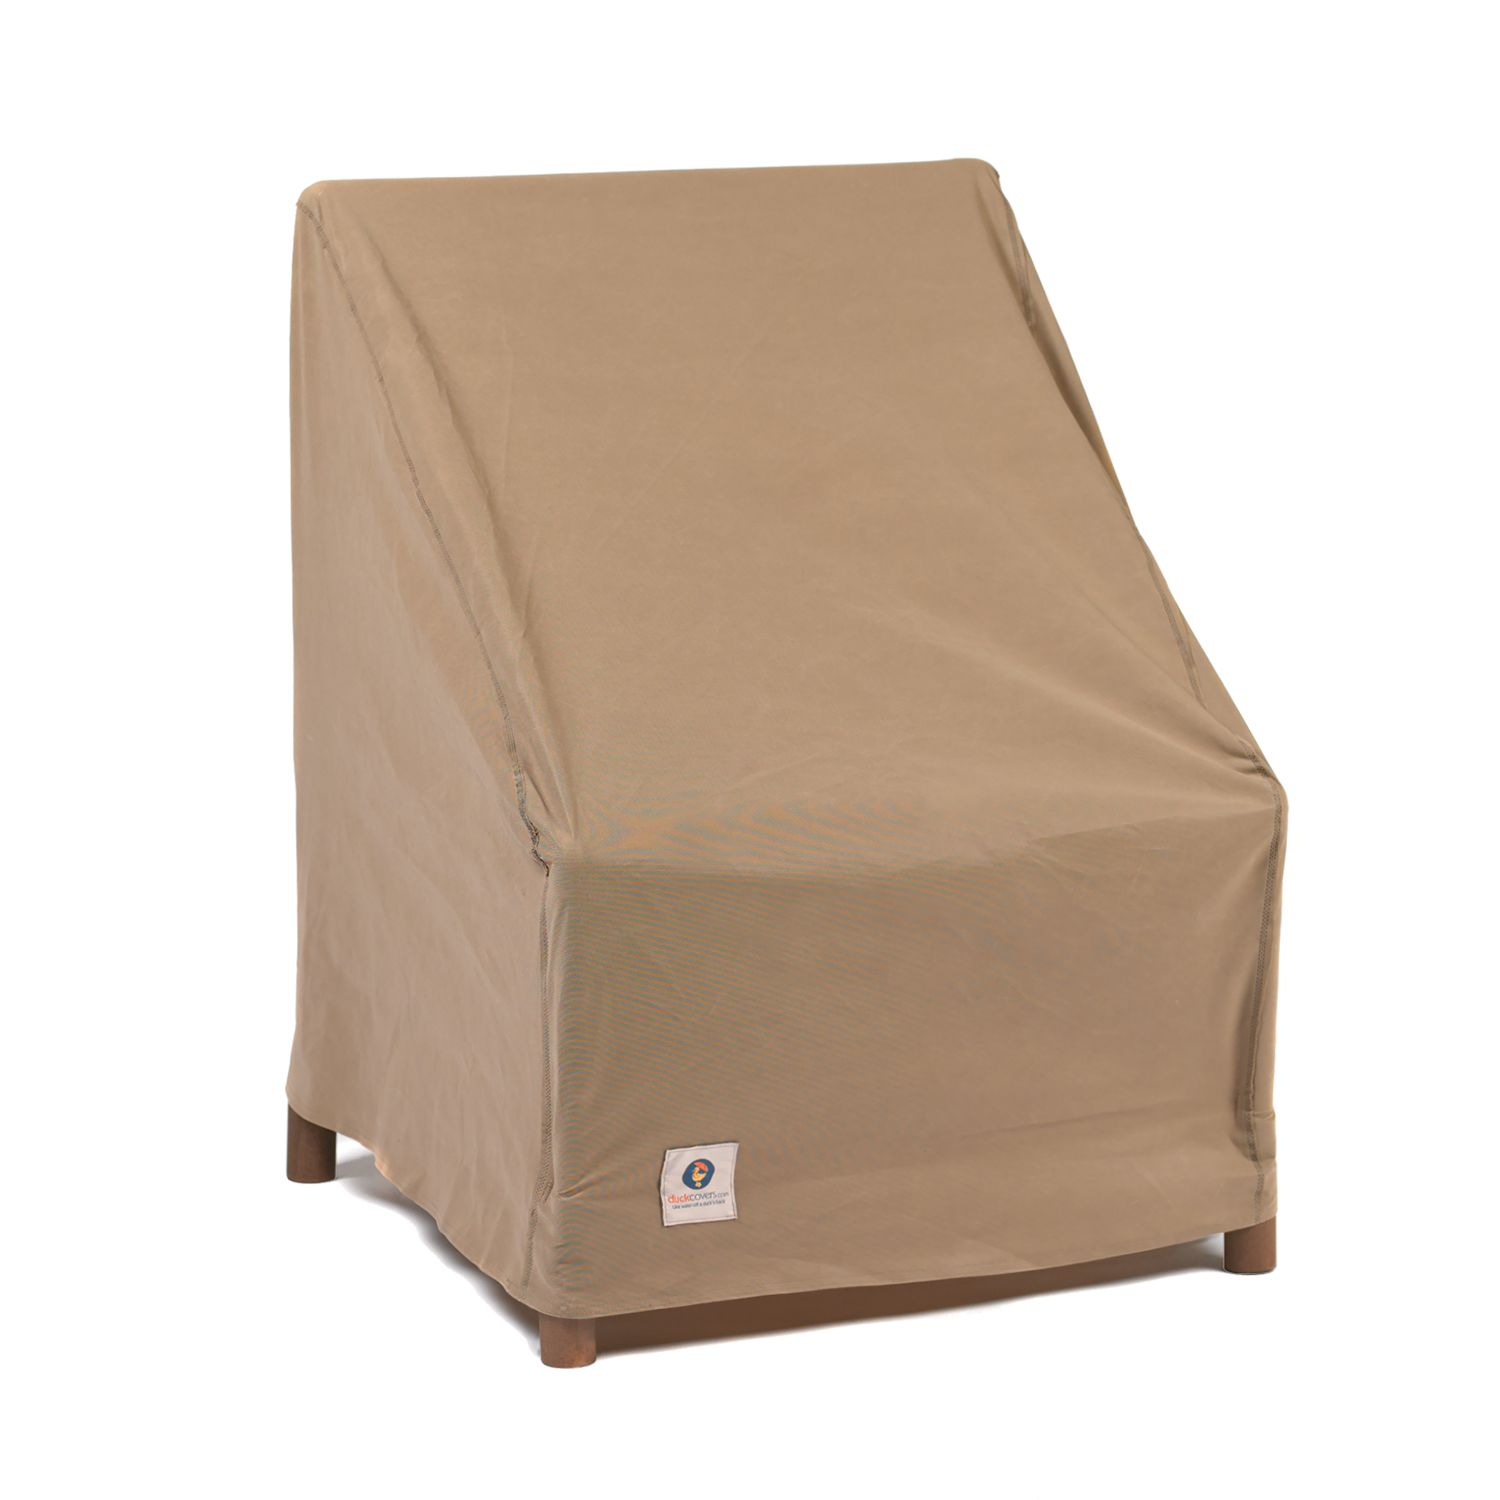 chair covers and more houston qatar patio furniture protectors other kohl s duck essential stackable cover